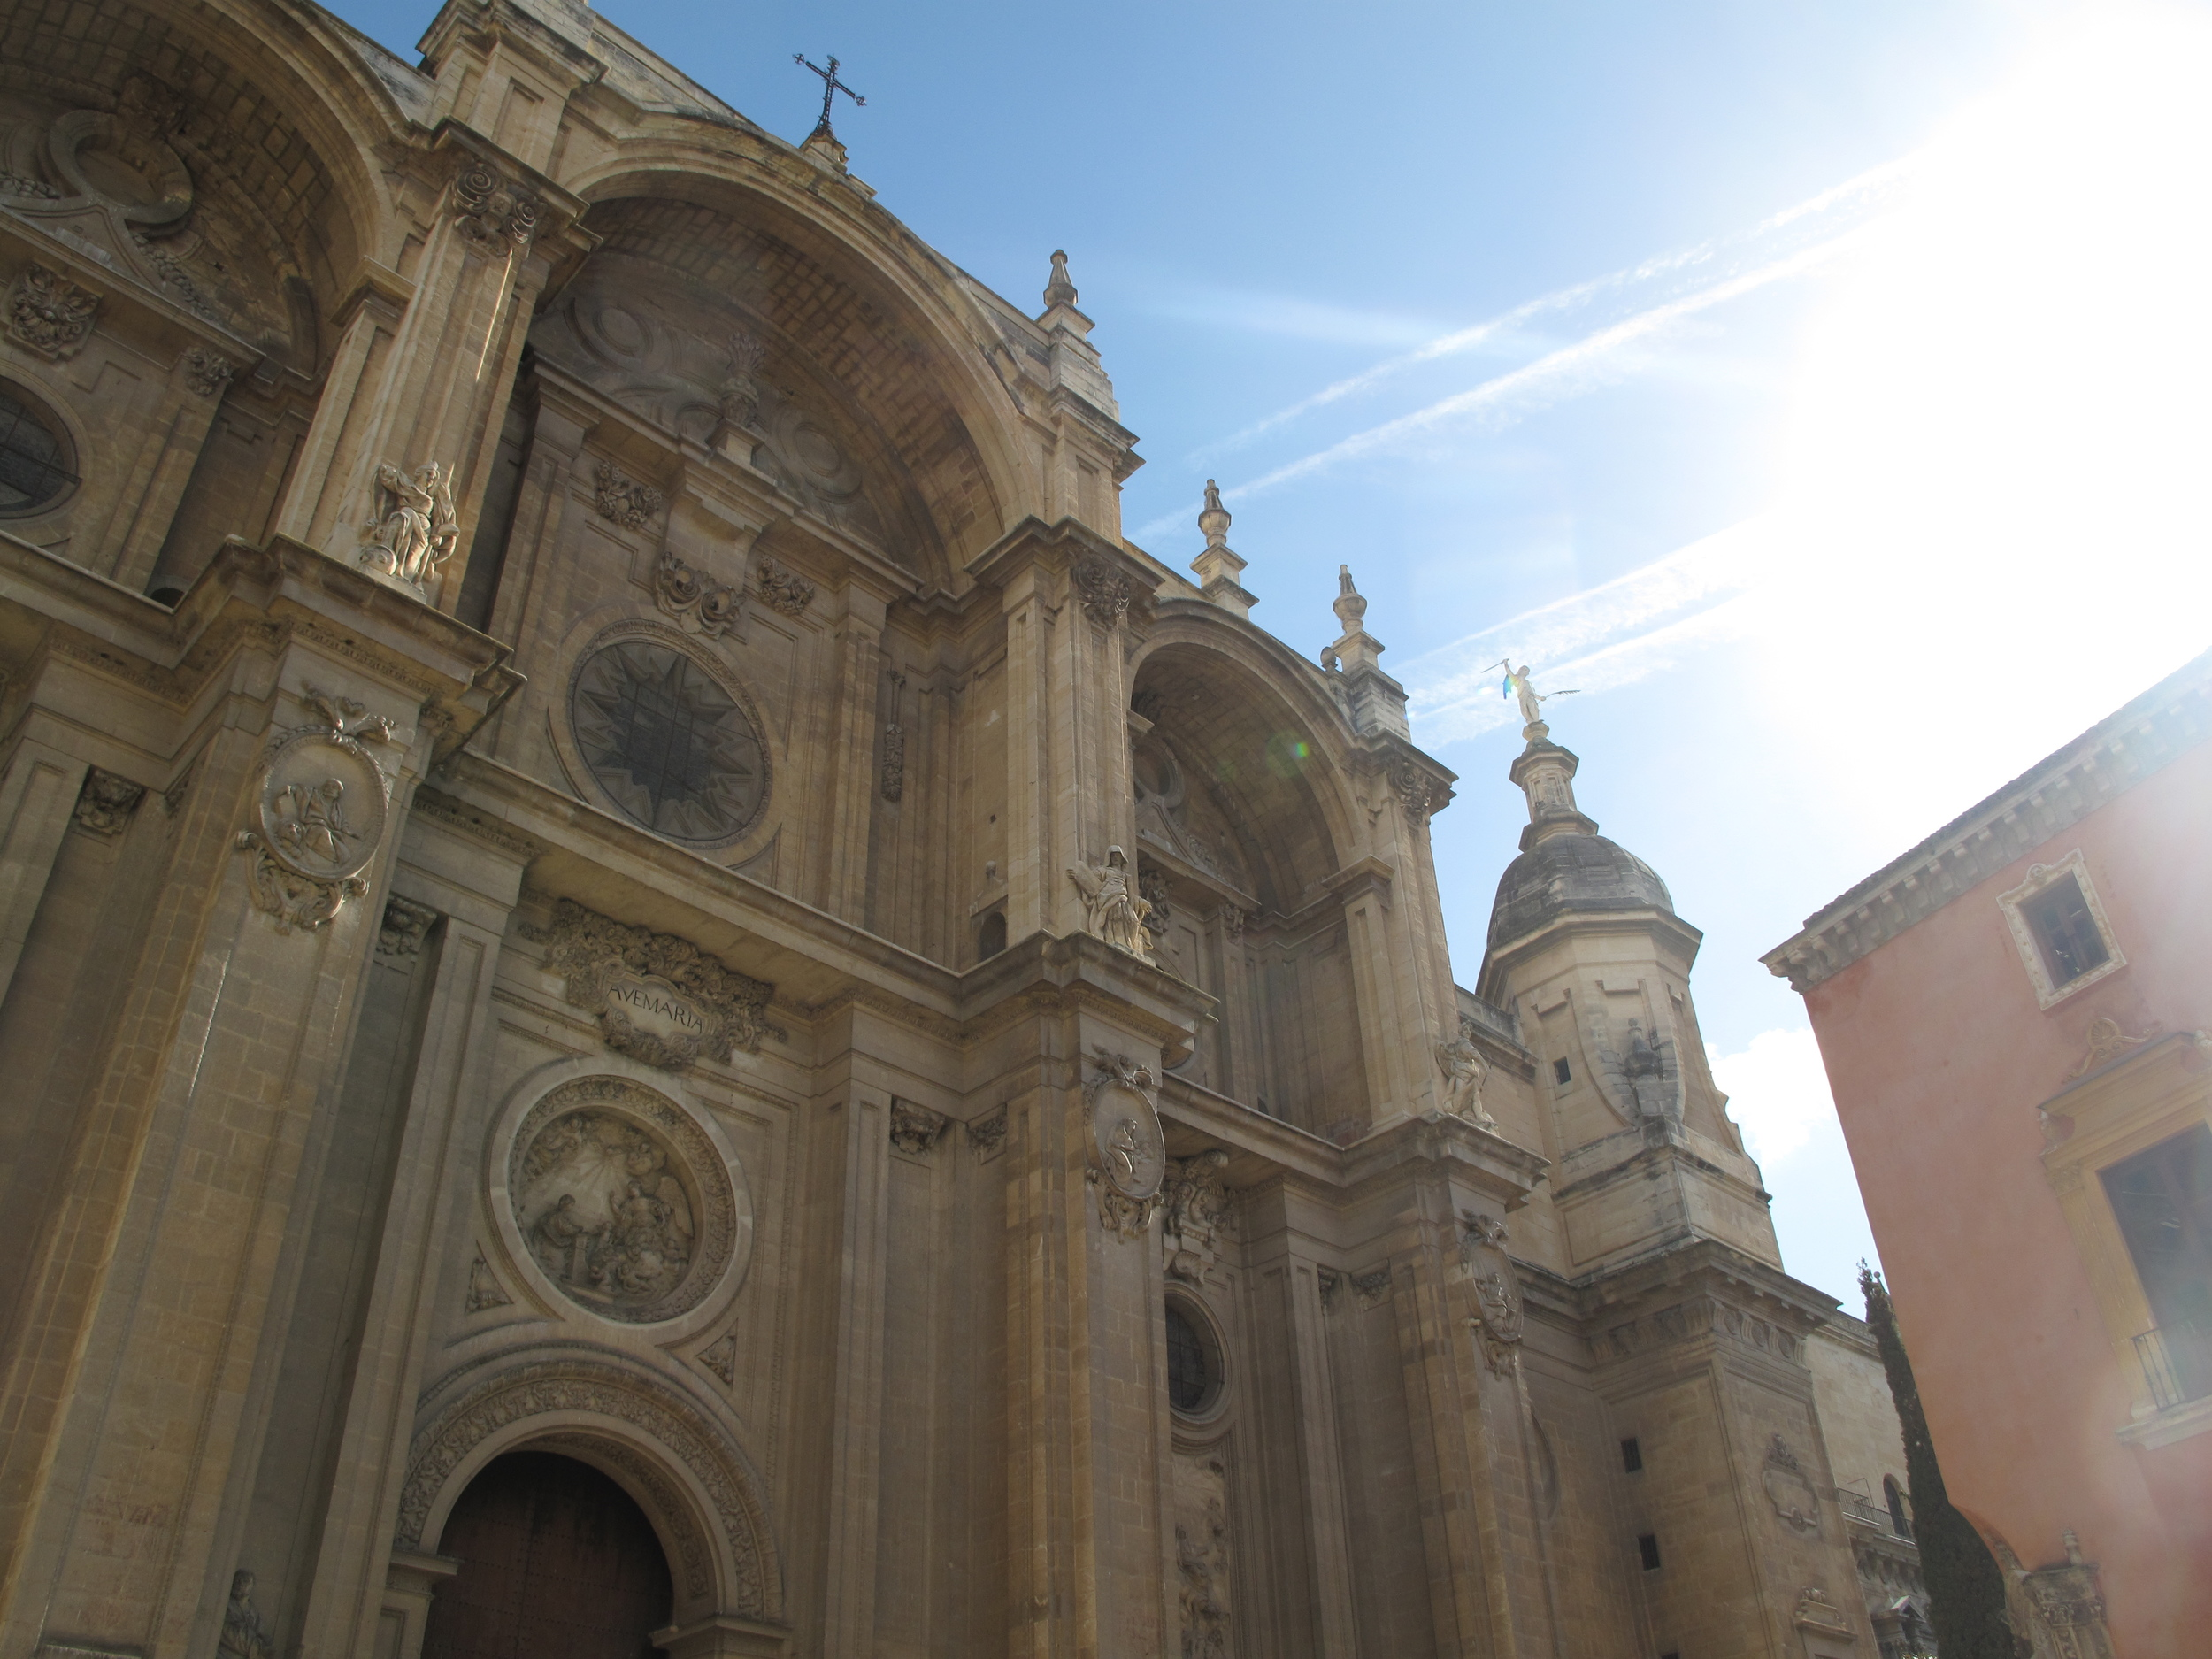 Stunning Granada cathedral in the sun